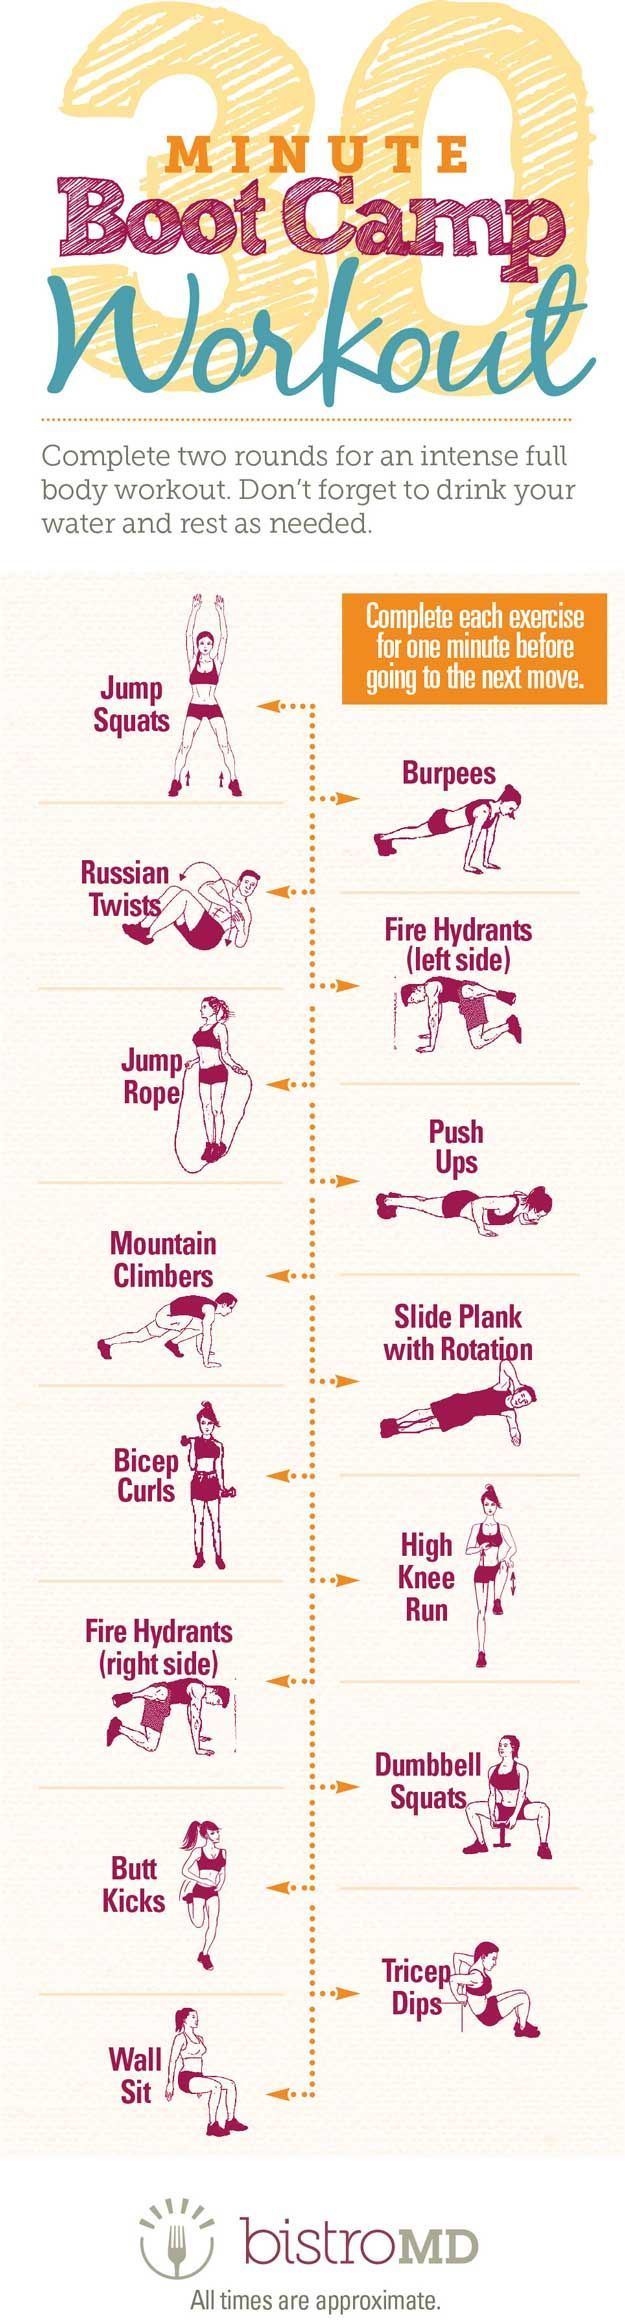 30-Minute Boot Camp Workout | 14 Best Fitness Workouts for Head to Toe Toning, check it out at http://makeuptutorials.com/best-fitness-workouts-makeup-tutorials